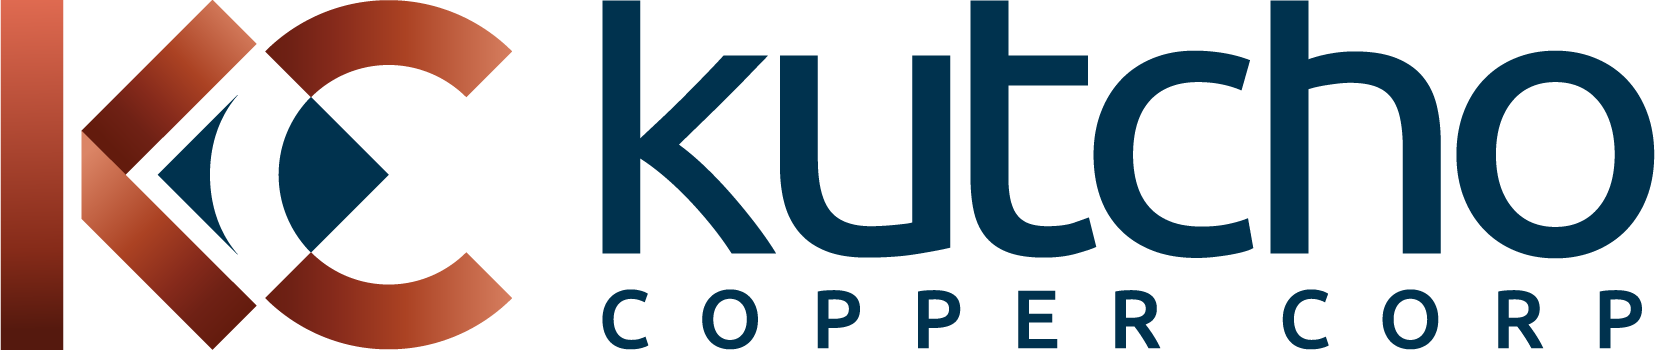 Kutcho Copper Receives Section 11 Order and Progresses to Next Phase of Environmental Assessment and Permitting Process